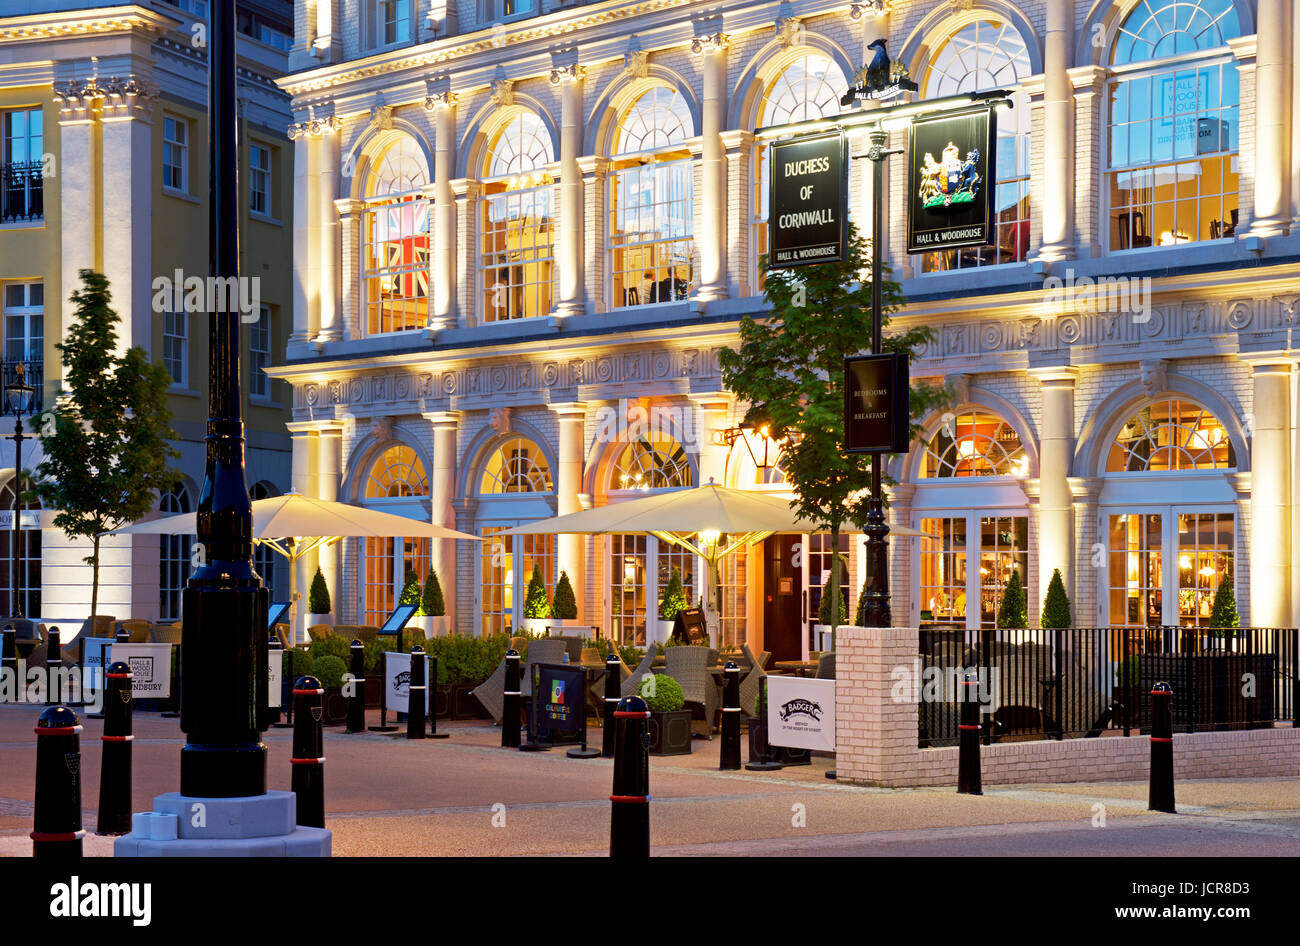 the-duchess-of-cornwall-inn-at-night-poundbury-dorset-england-uk-JCR8D3.jpg